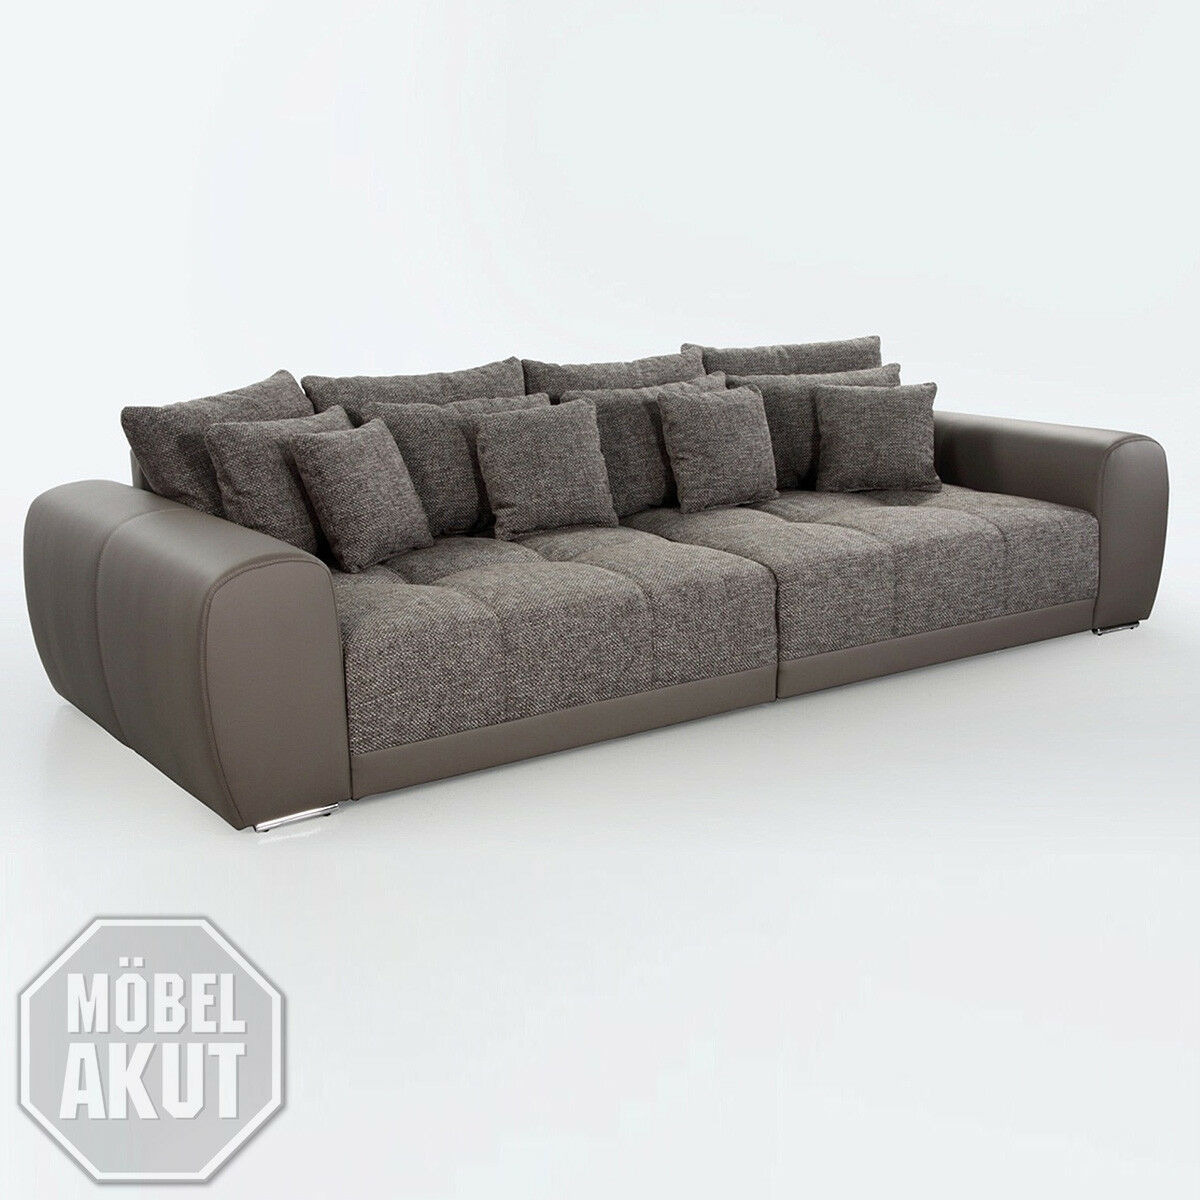 BIG SOFA SAM Polstermöbel XXL Sofa in Elefant Schlamm 310 - EUR 799 ...